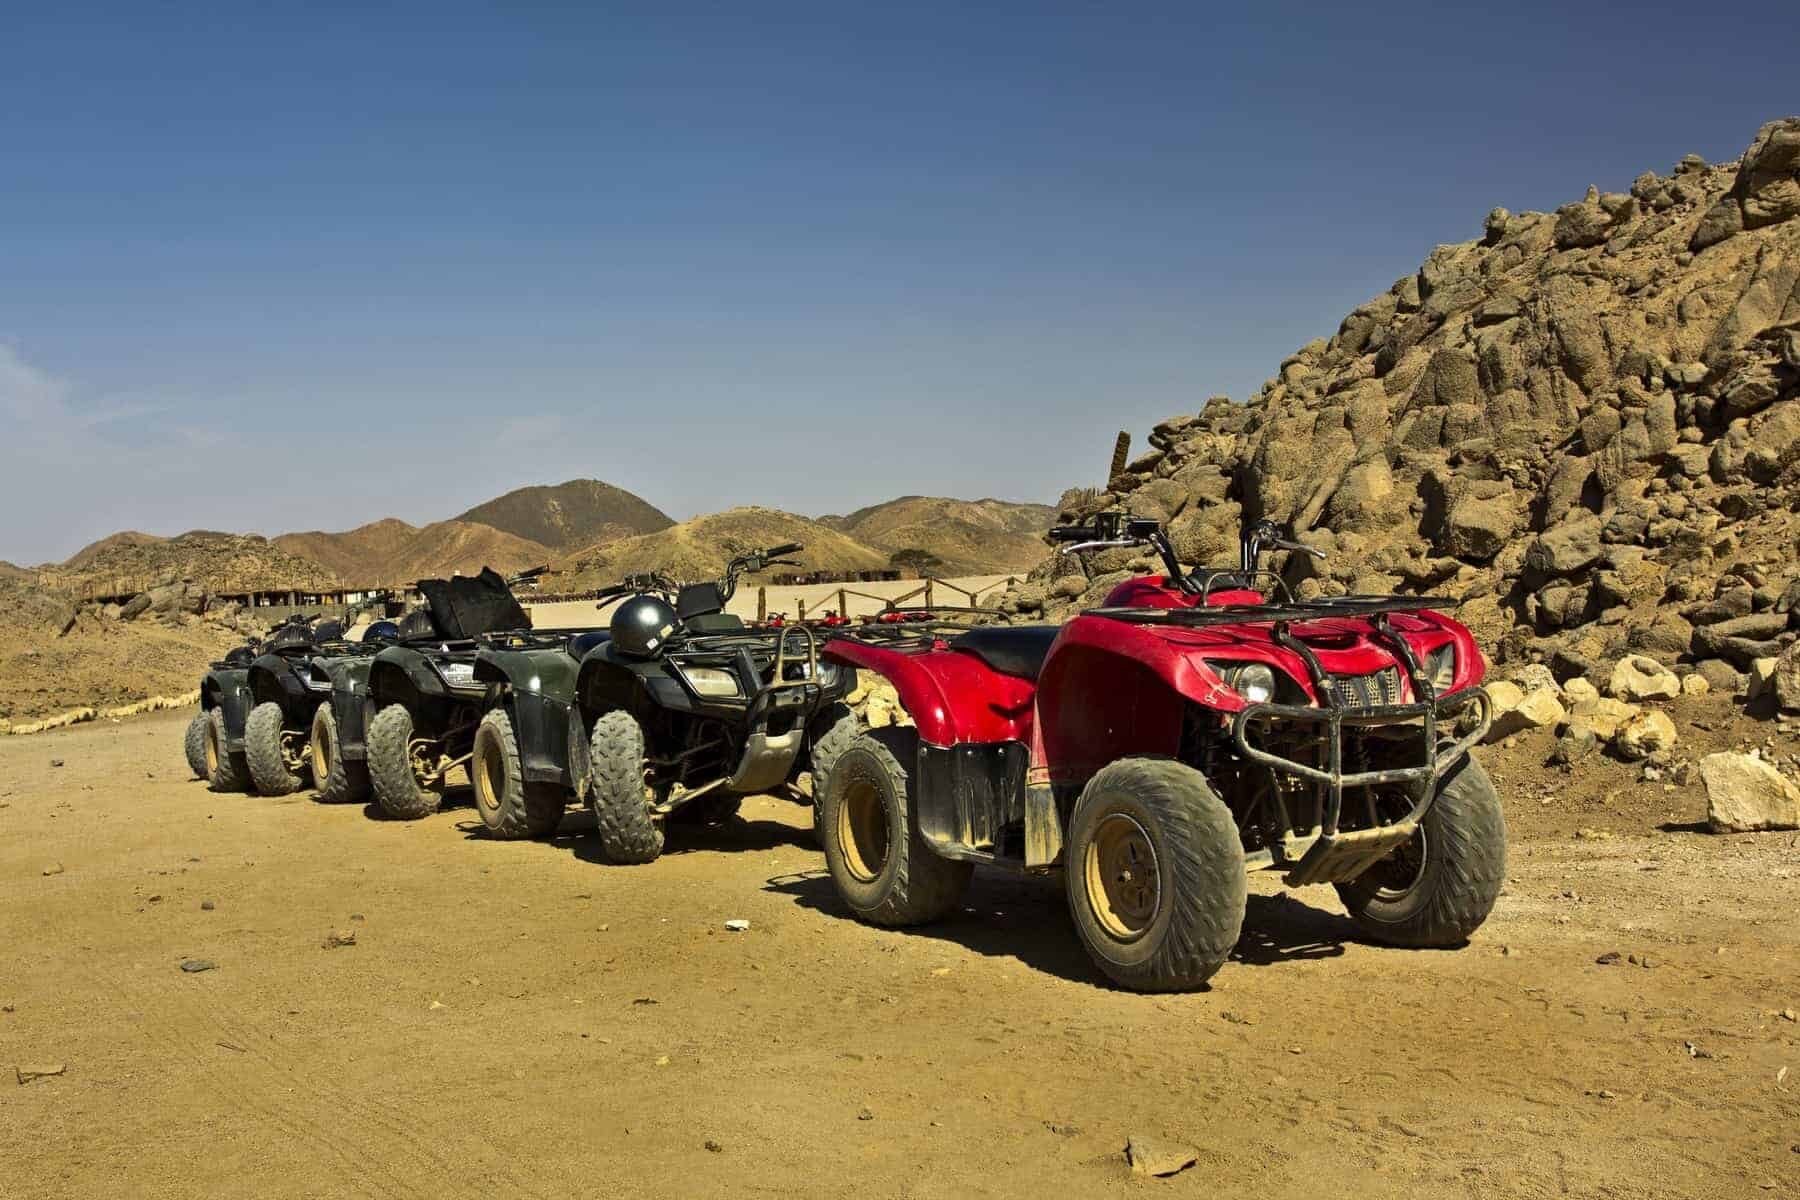 Photo is taken when riding a Quad bike near the city of Hurghada